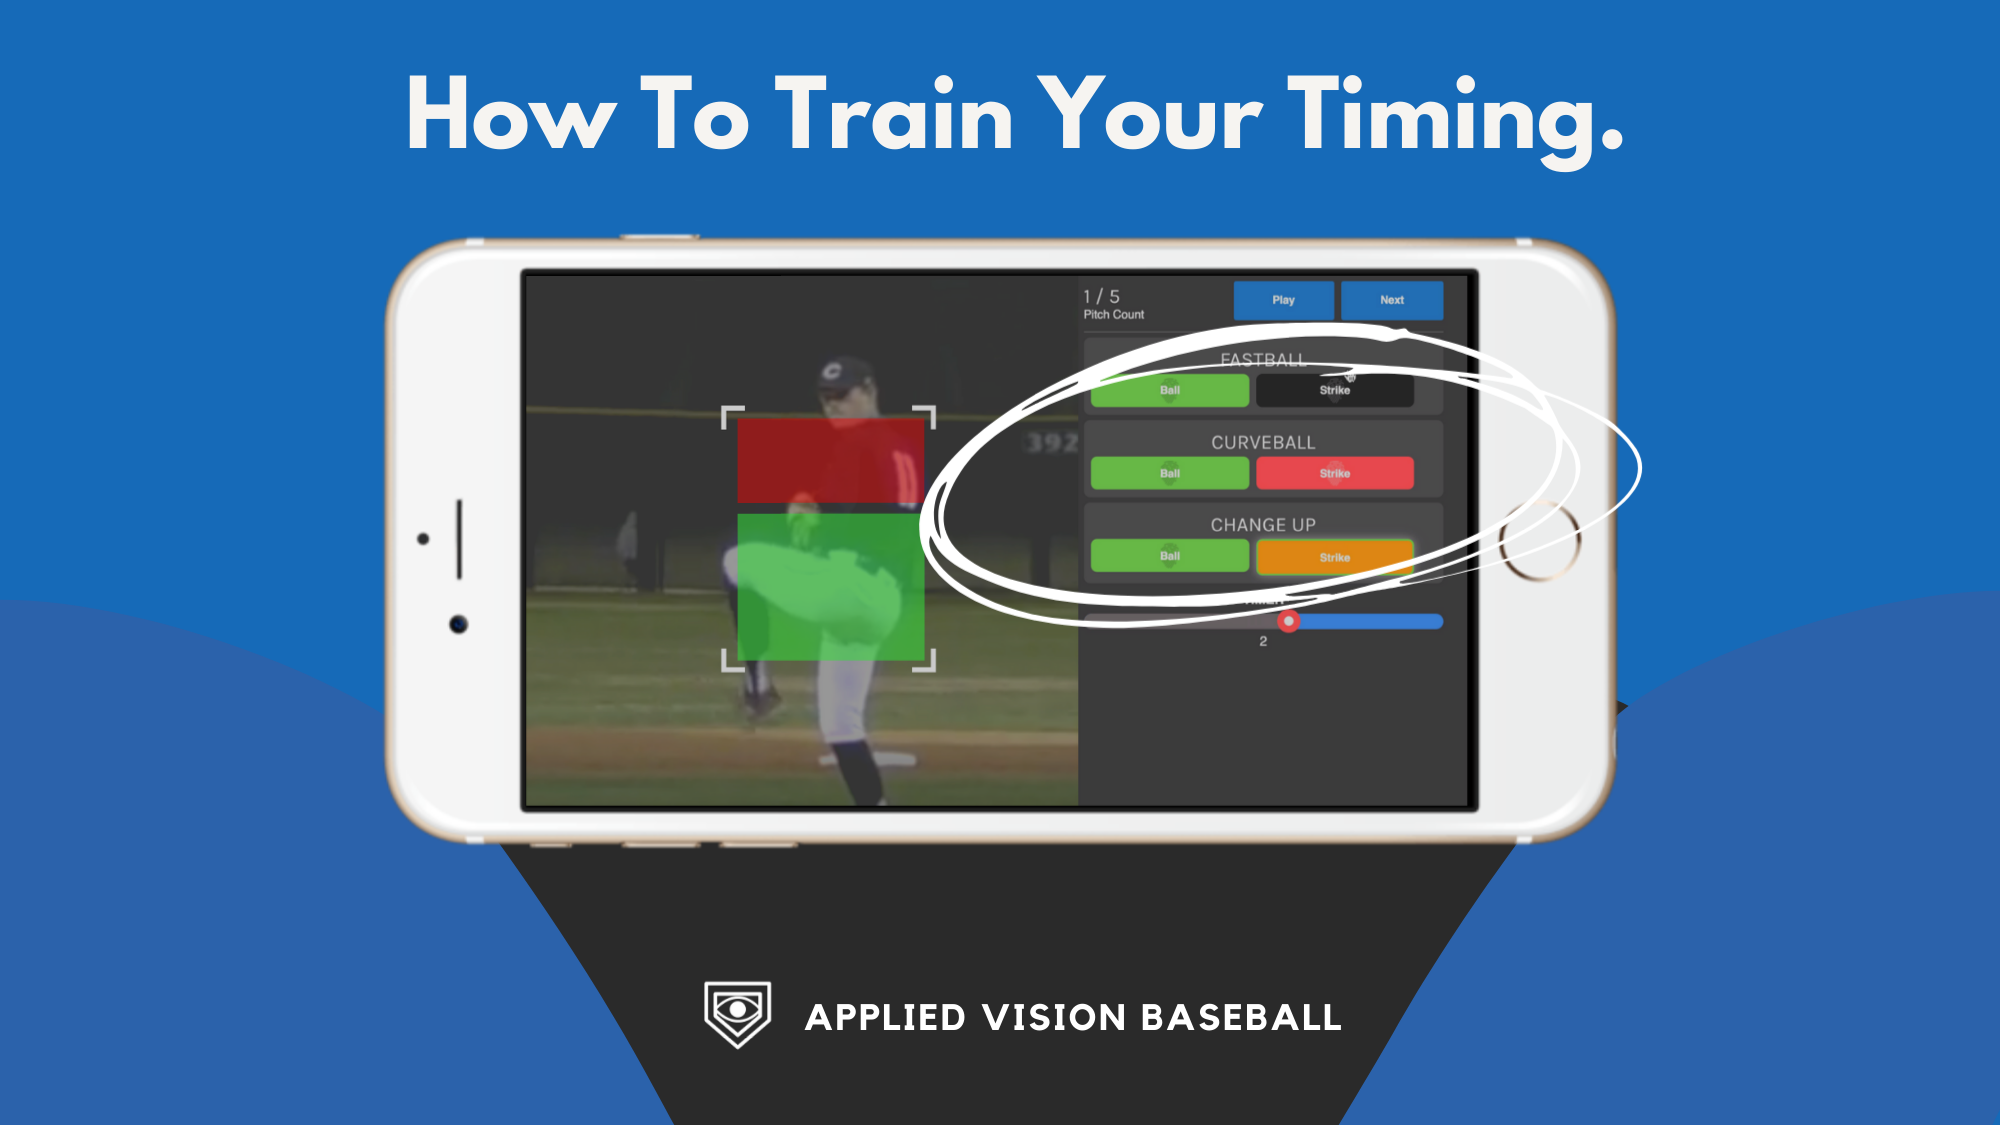 Train Your Timing With Baseball Hitting Drills At Home.